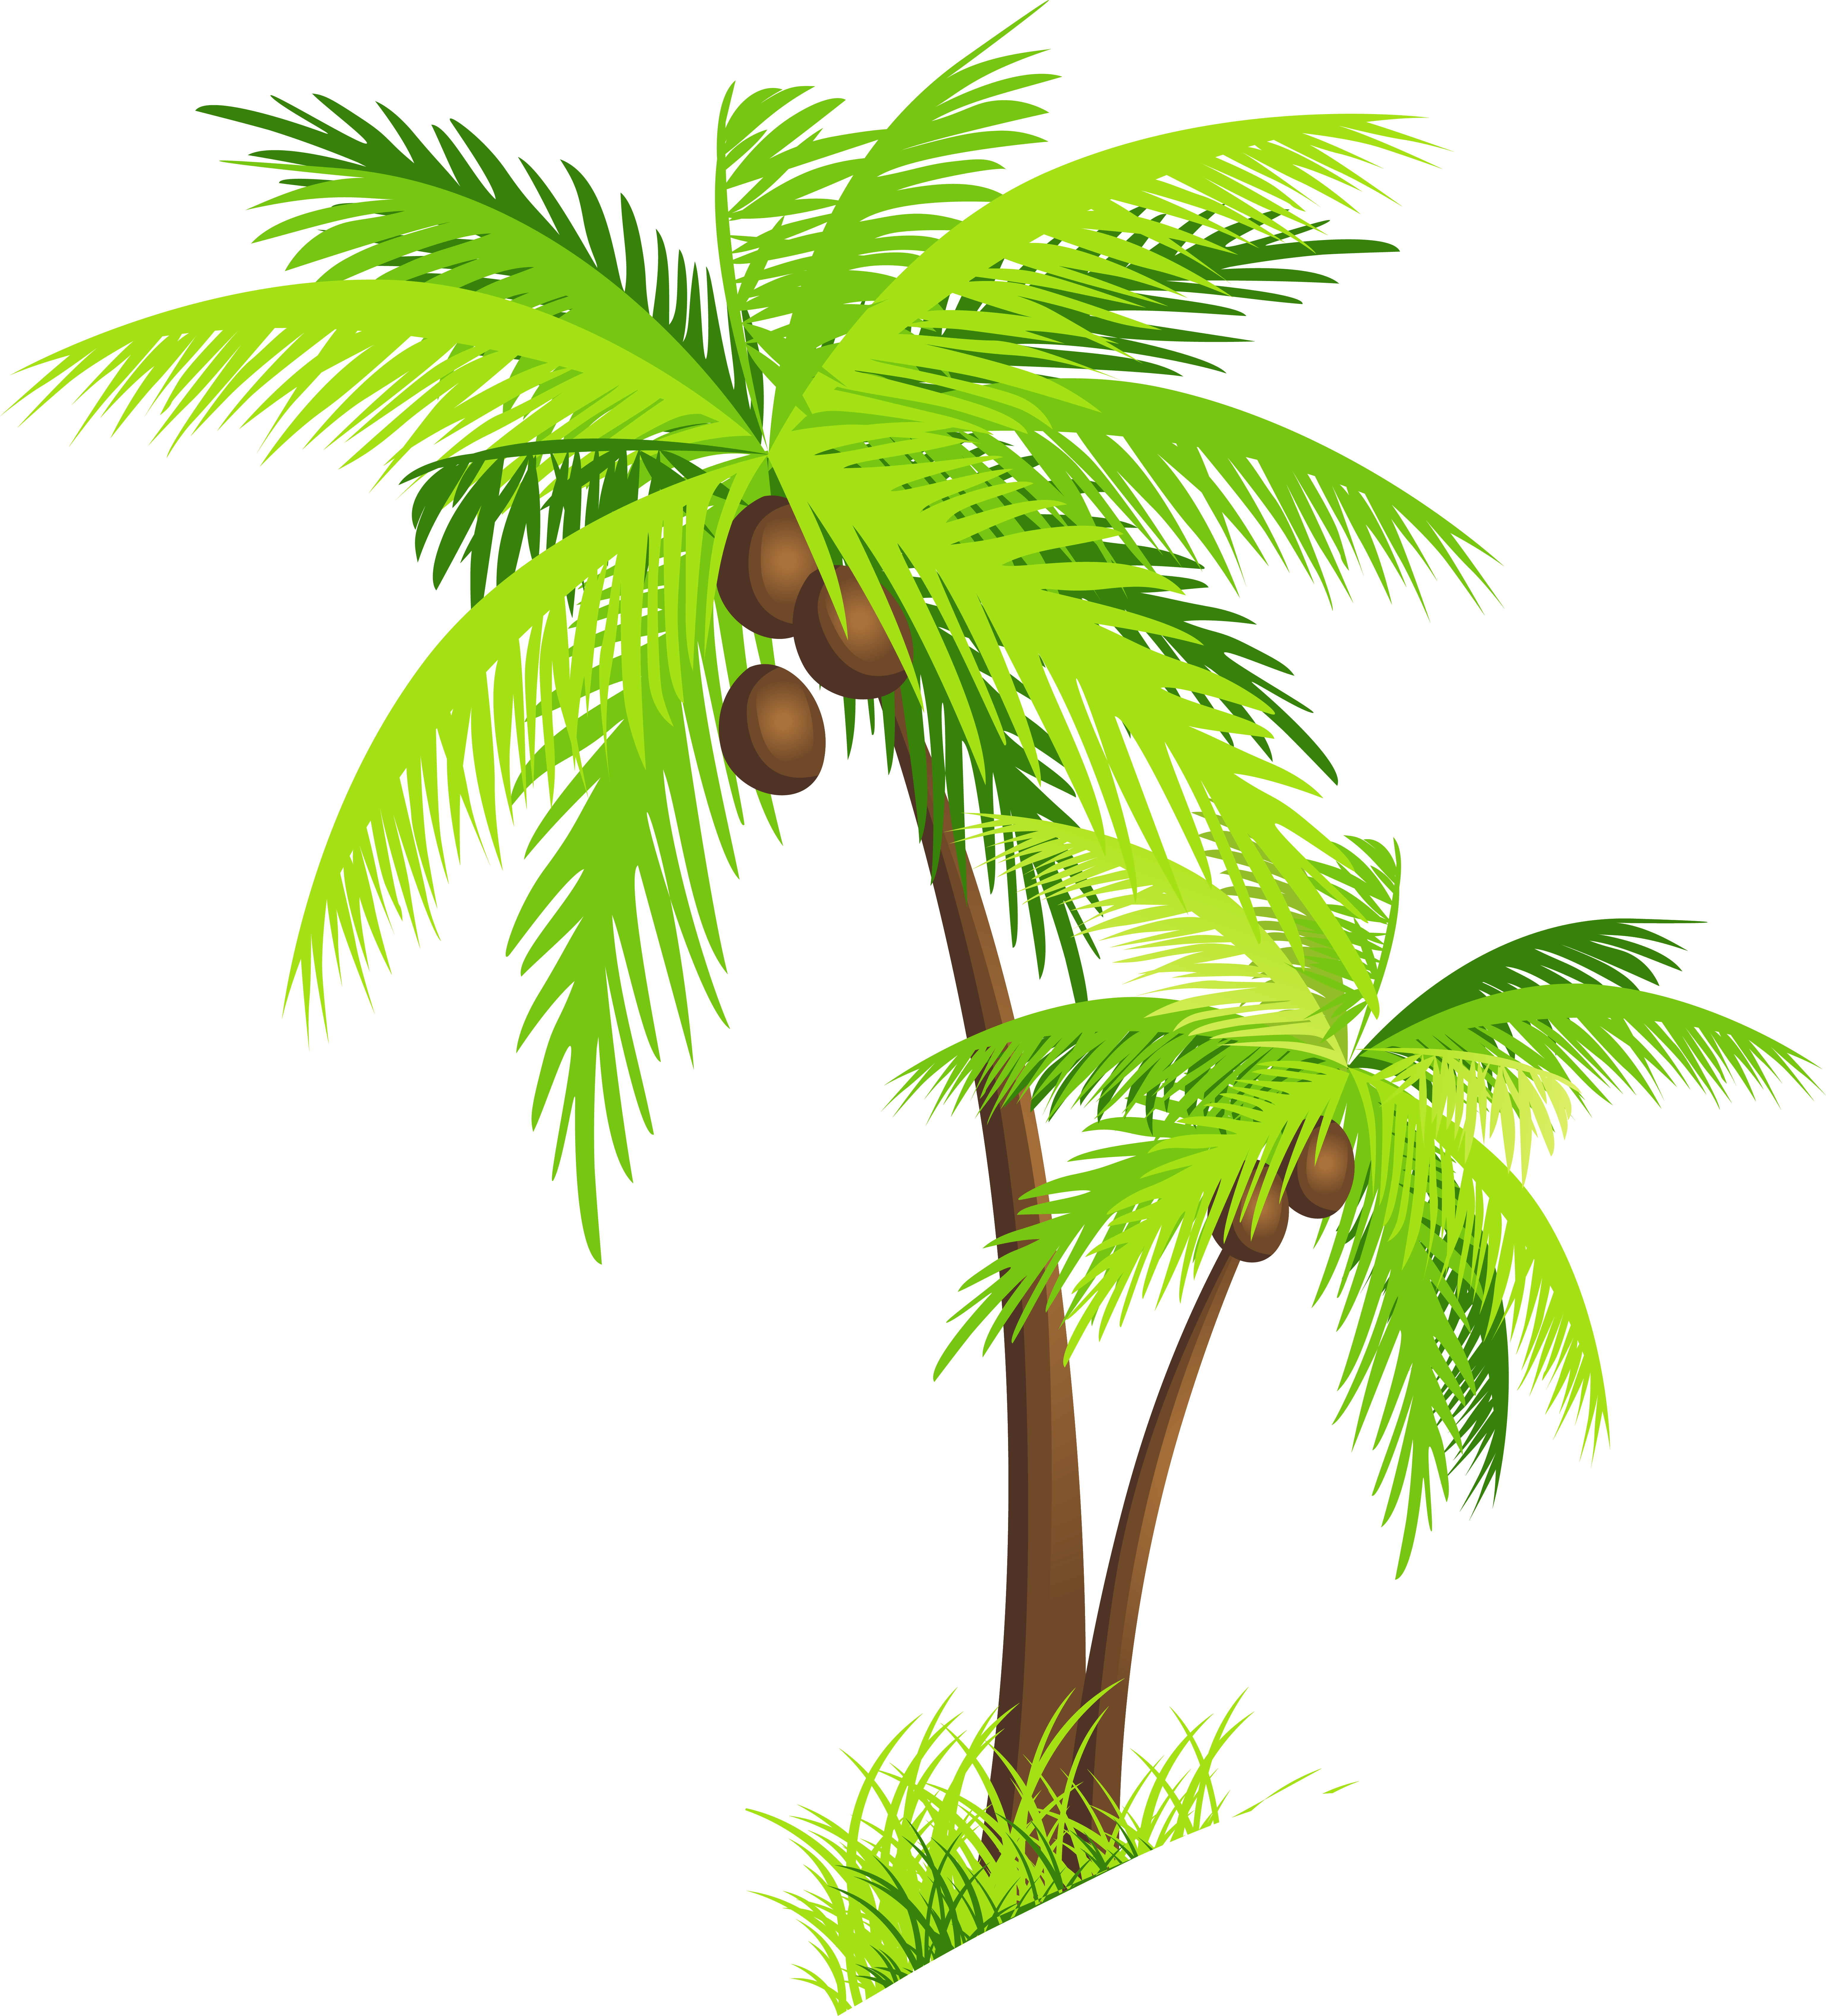 Coconut tree vector png. Transparent images pluspng clipart